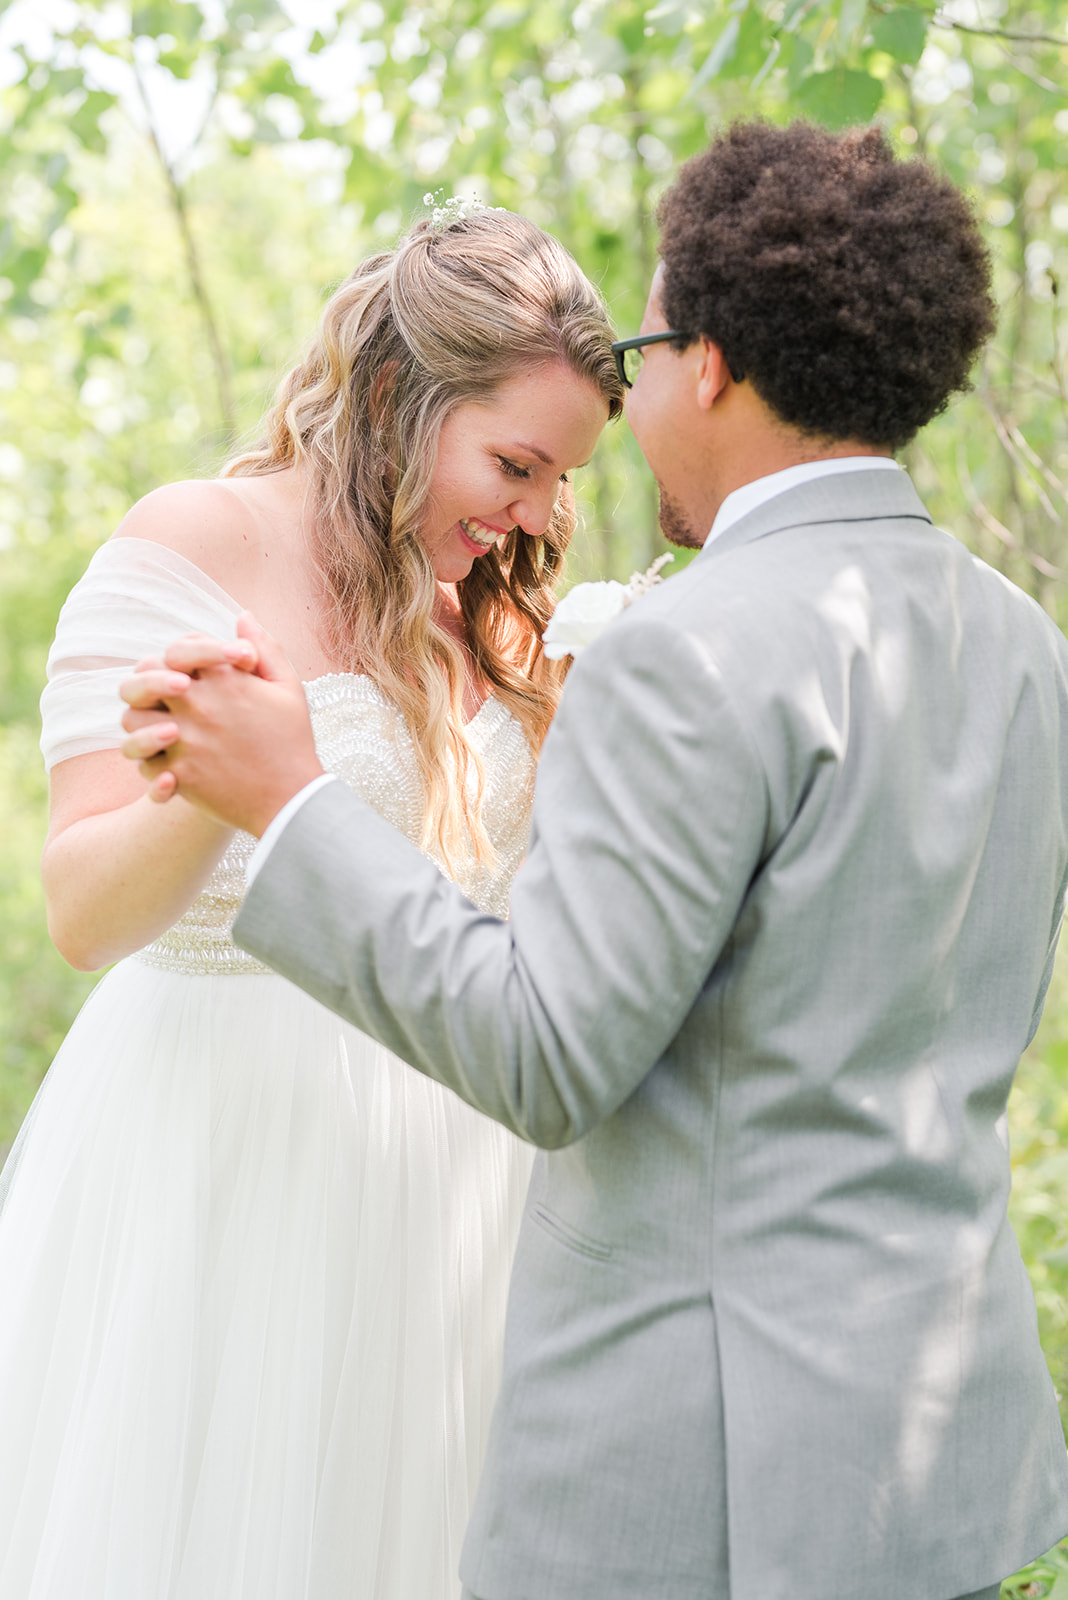 Lauren & Isaiah-Bride & Groom Portraits-38_websize.jpg